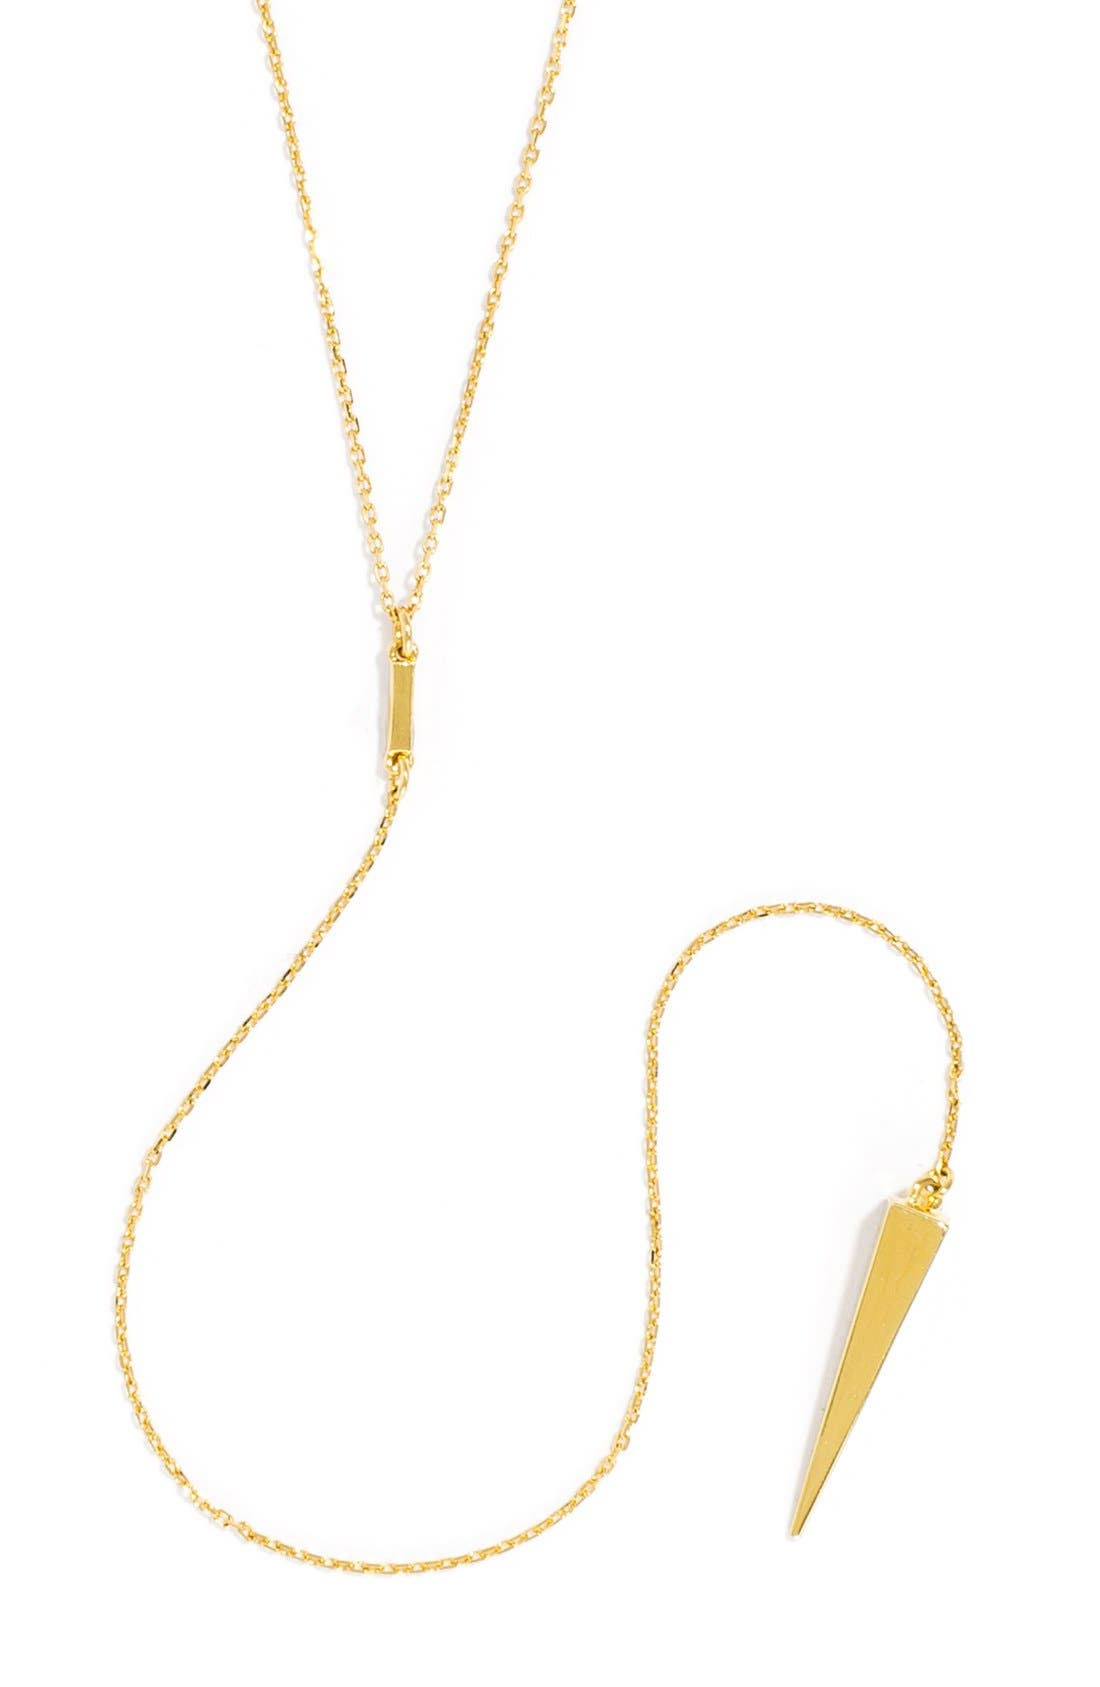 'Pyramid' Layered Necklace Gift Set,                             Alternate thumbnail 5, color,                             Gold